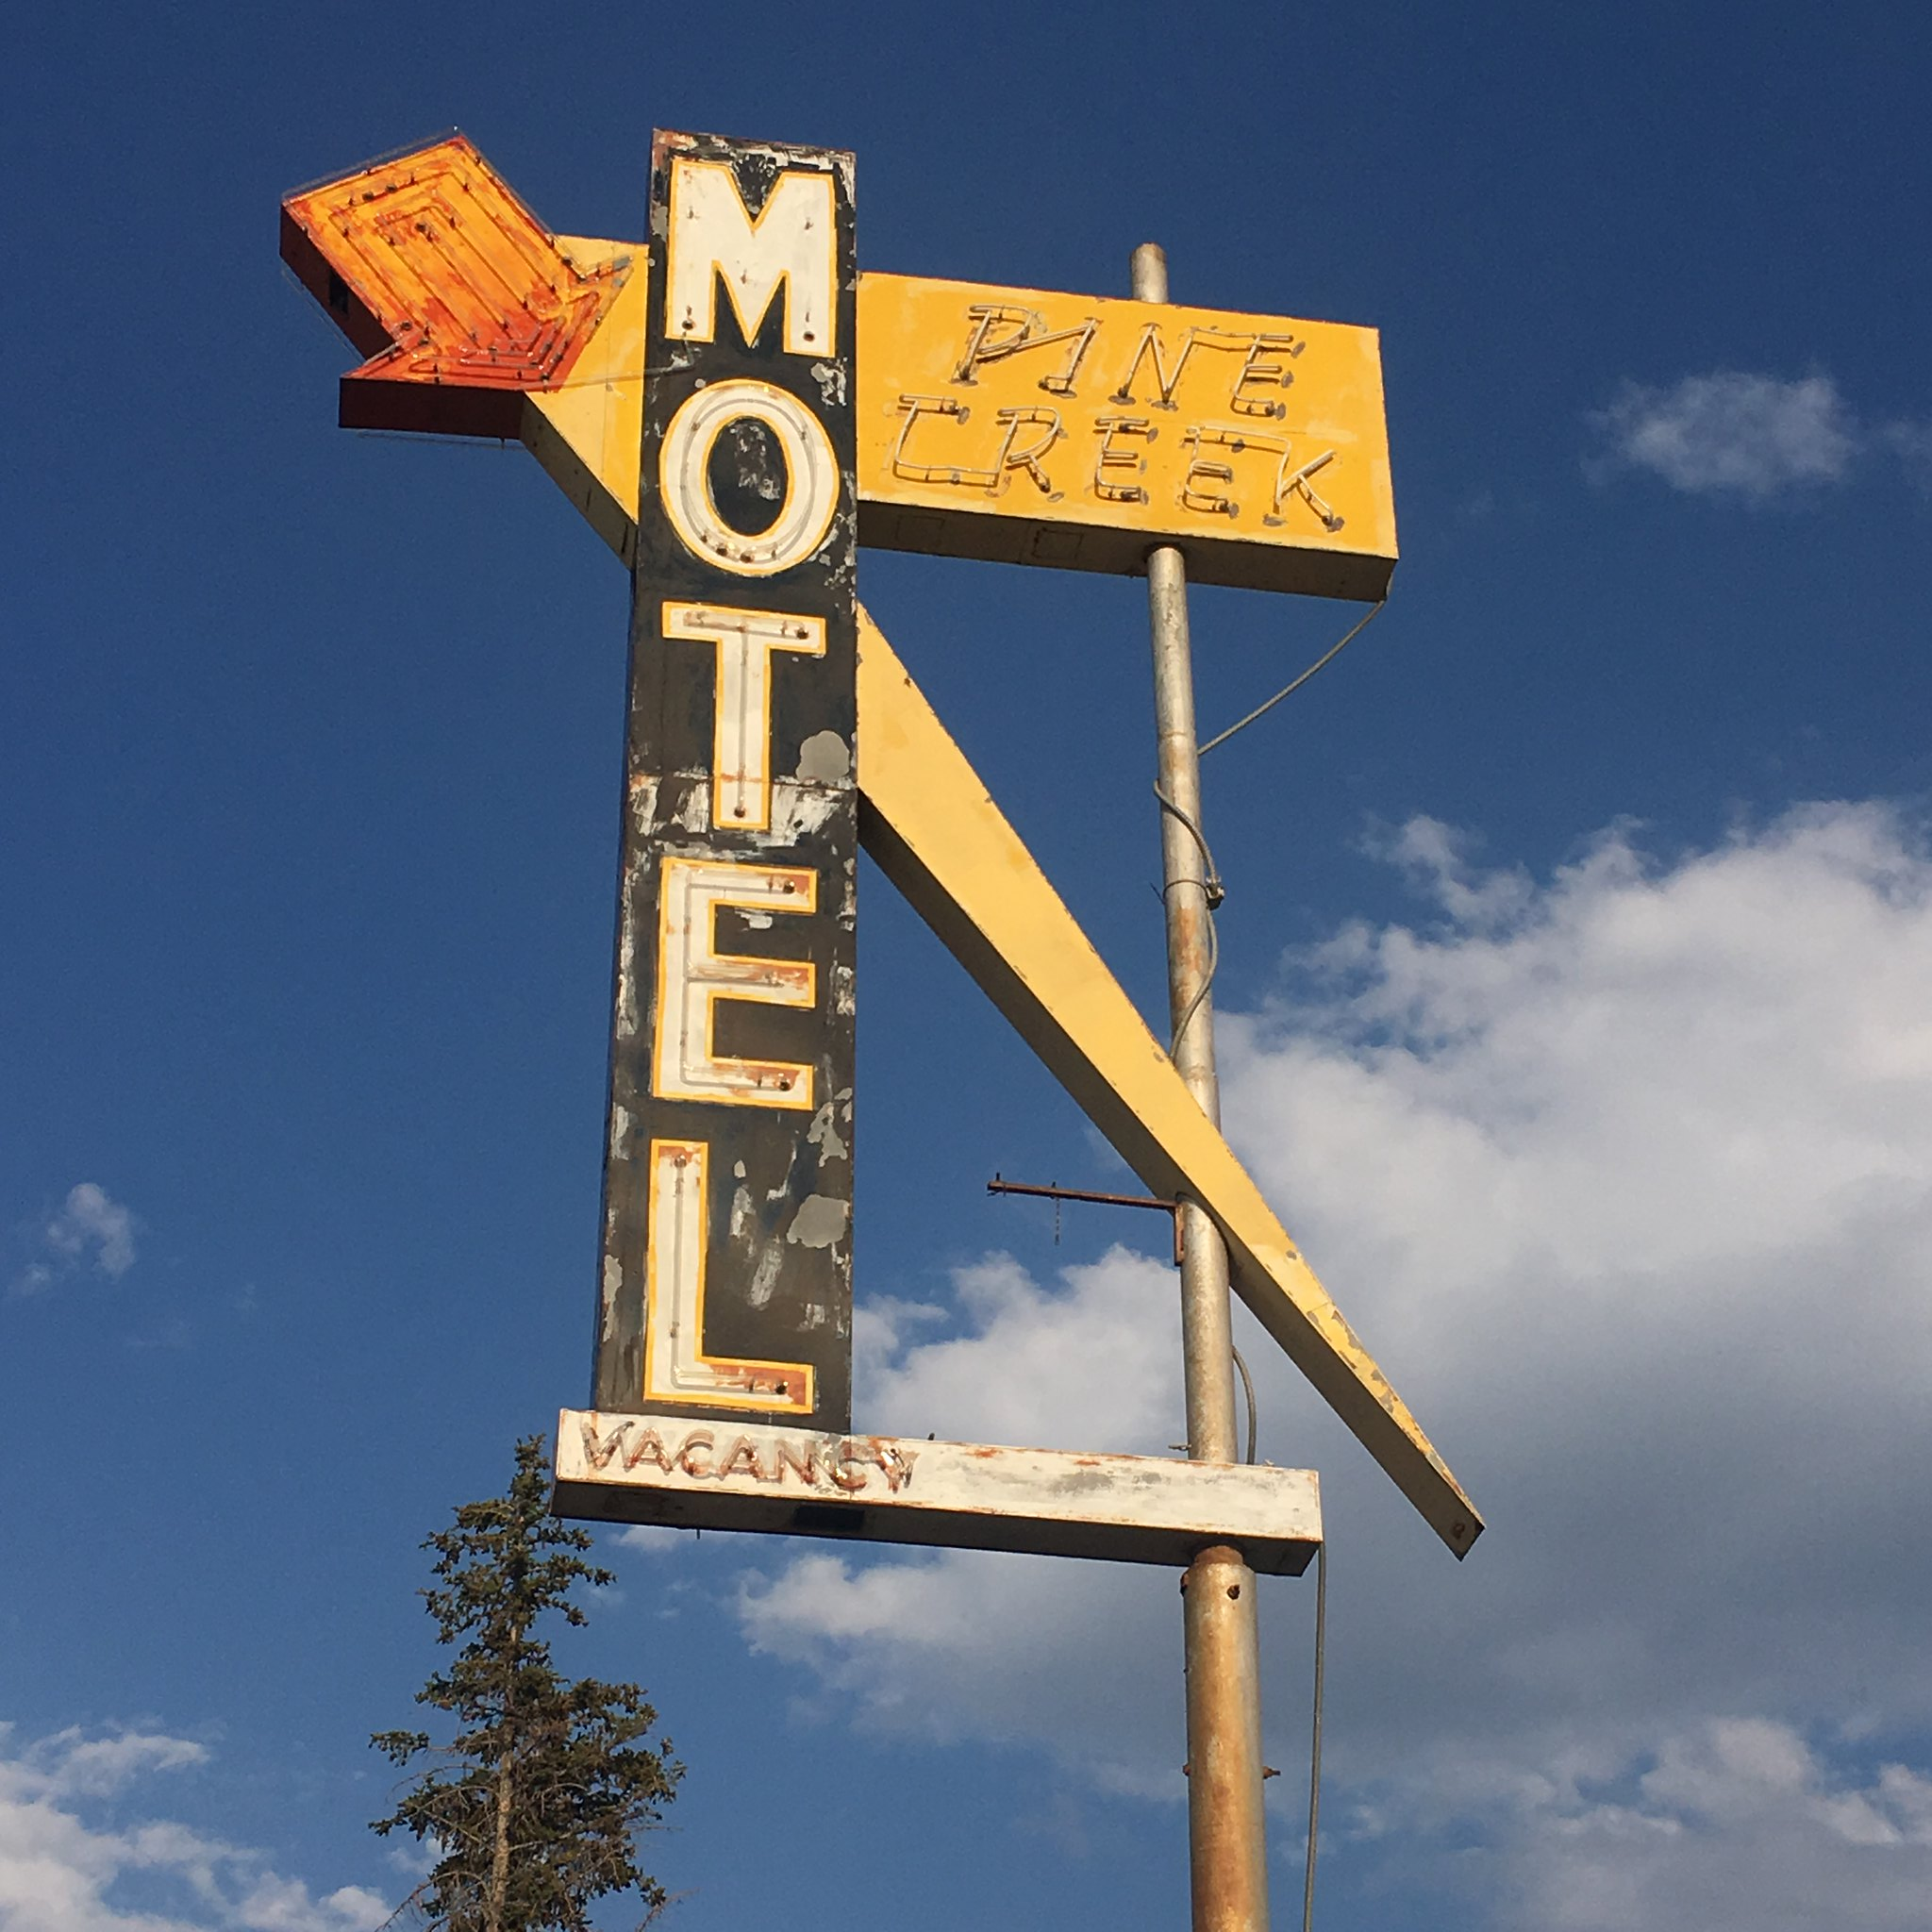 Pine Creek Motel - Pinedale, Wyoming U.S.A. - August 13, 2018